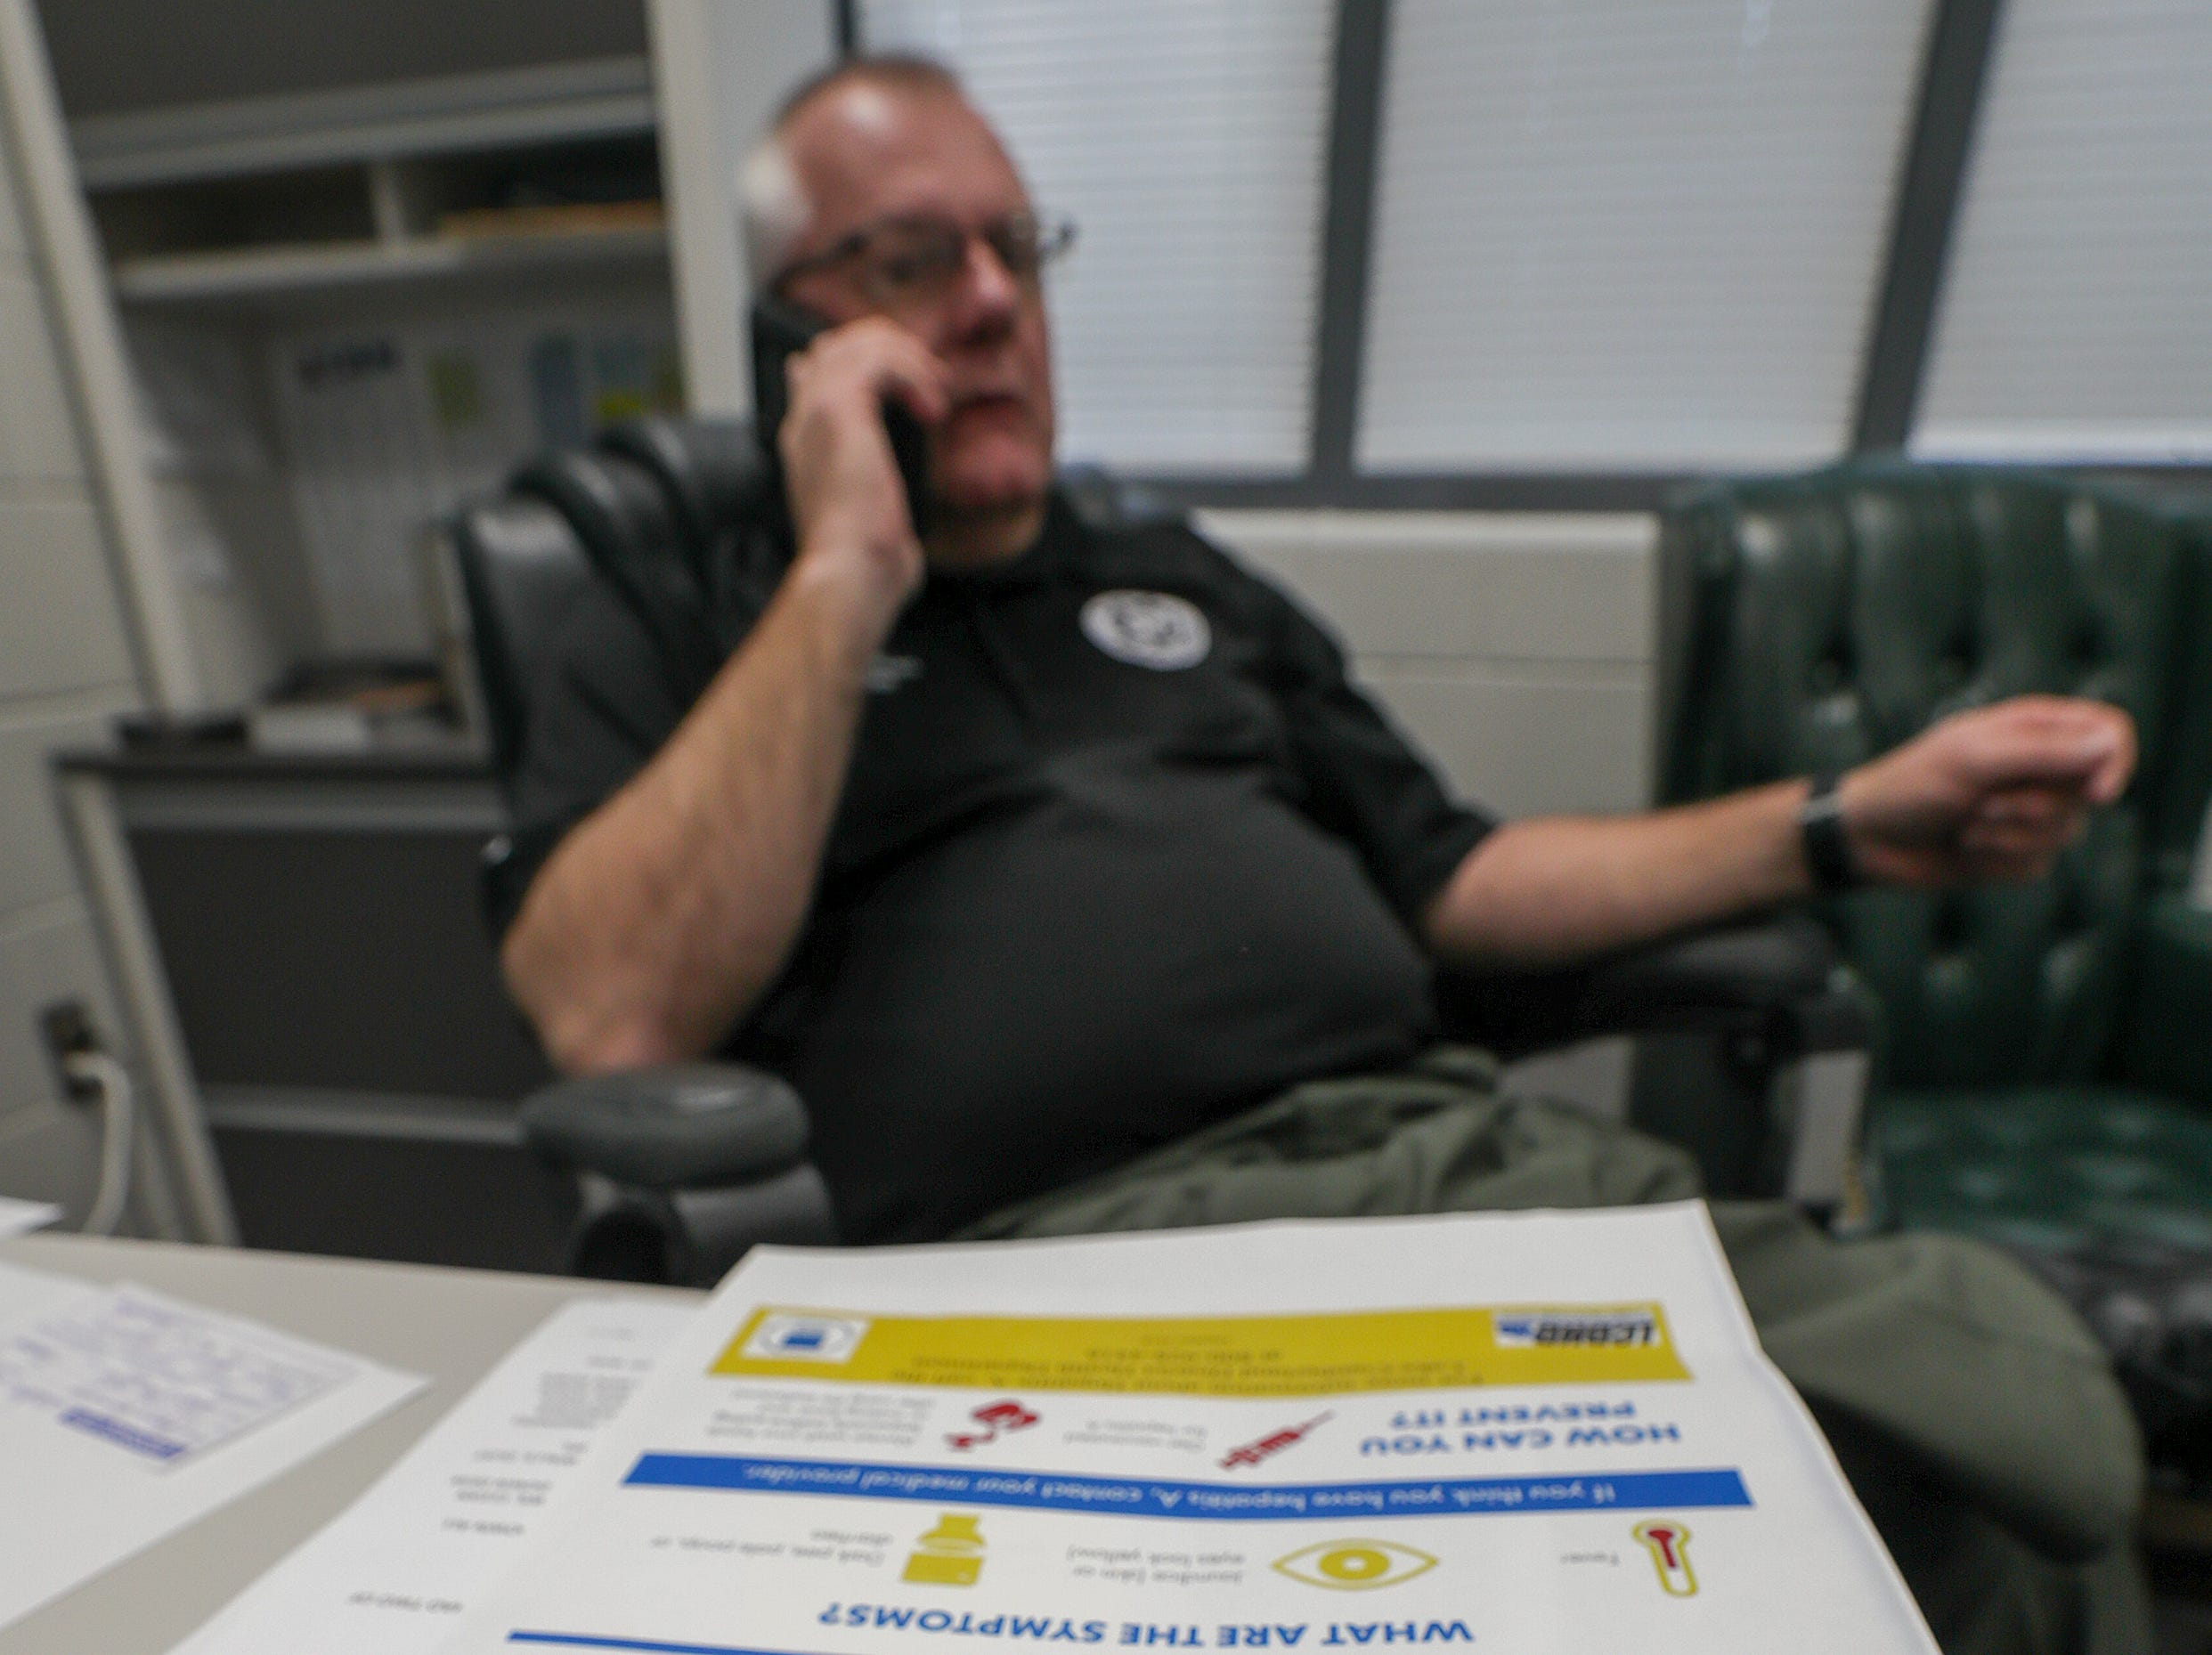 Pulaski County Detention Center Jailer Anthony McCullum talks on the phone in his office at the jail.  He has begun offering vaccinations for hepatitis in his jail after two inmates became ill.  About 90 percent of inmates opt to get vaccinated.